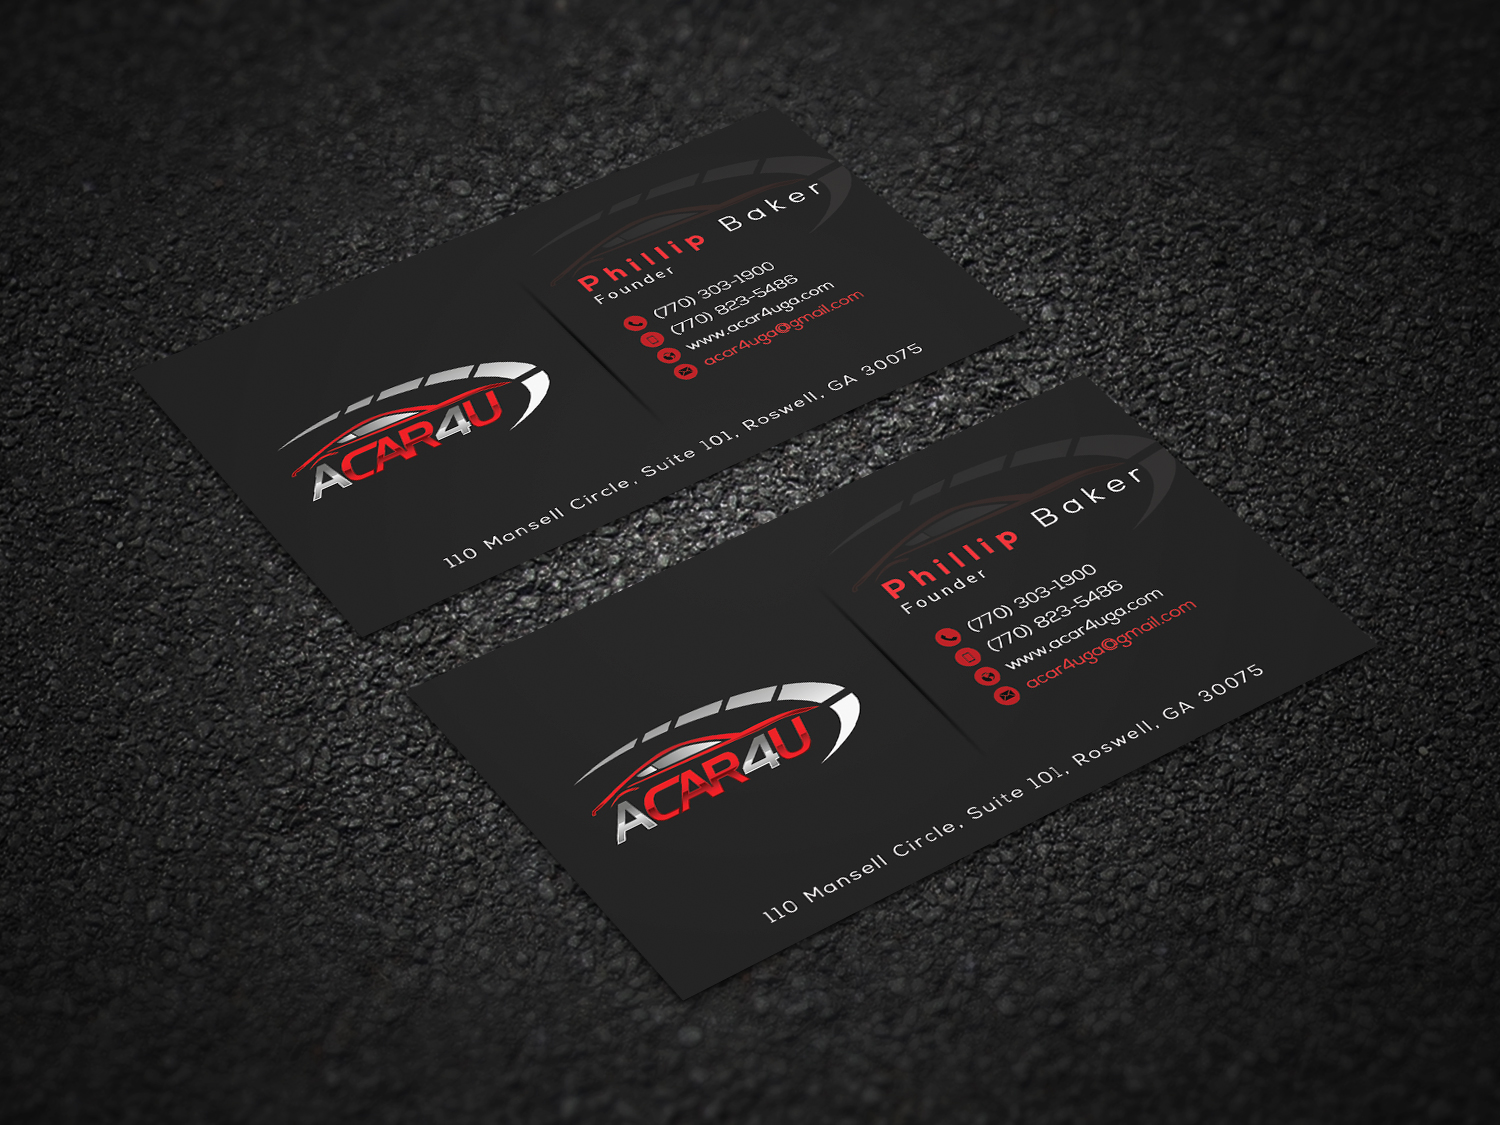 Modern upmarket business card design for phillip baker by hr 36 business card design by hr 36 for used car dealer seeks an amazing business card design magicingreecefo Image collections